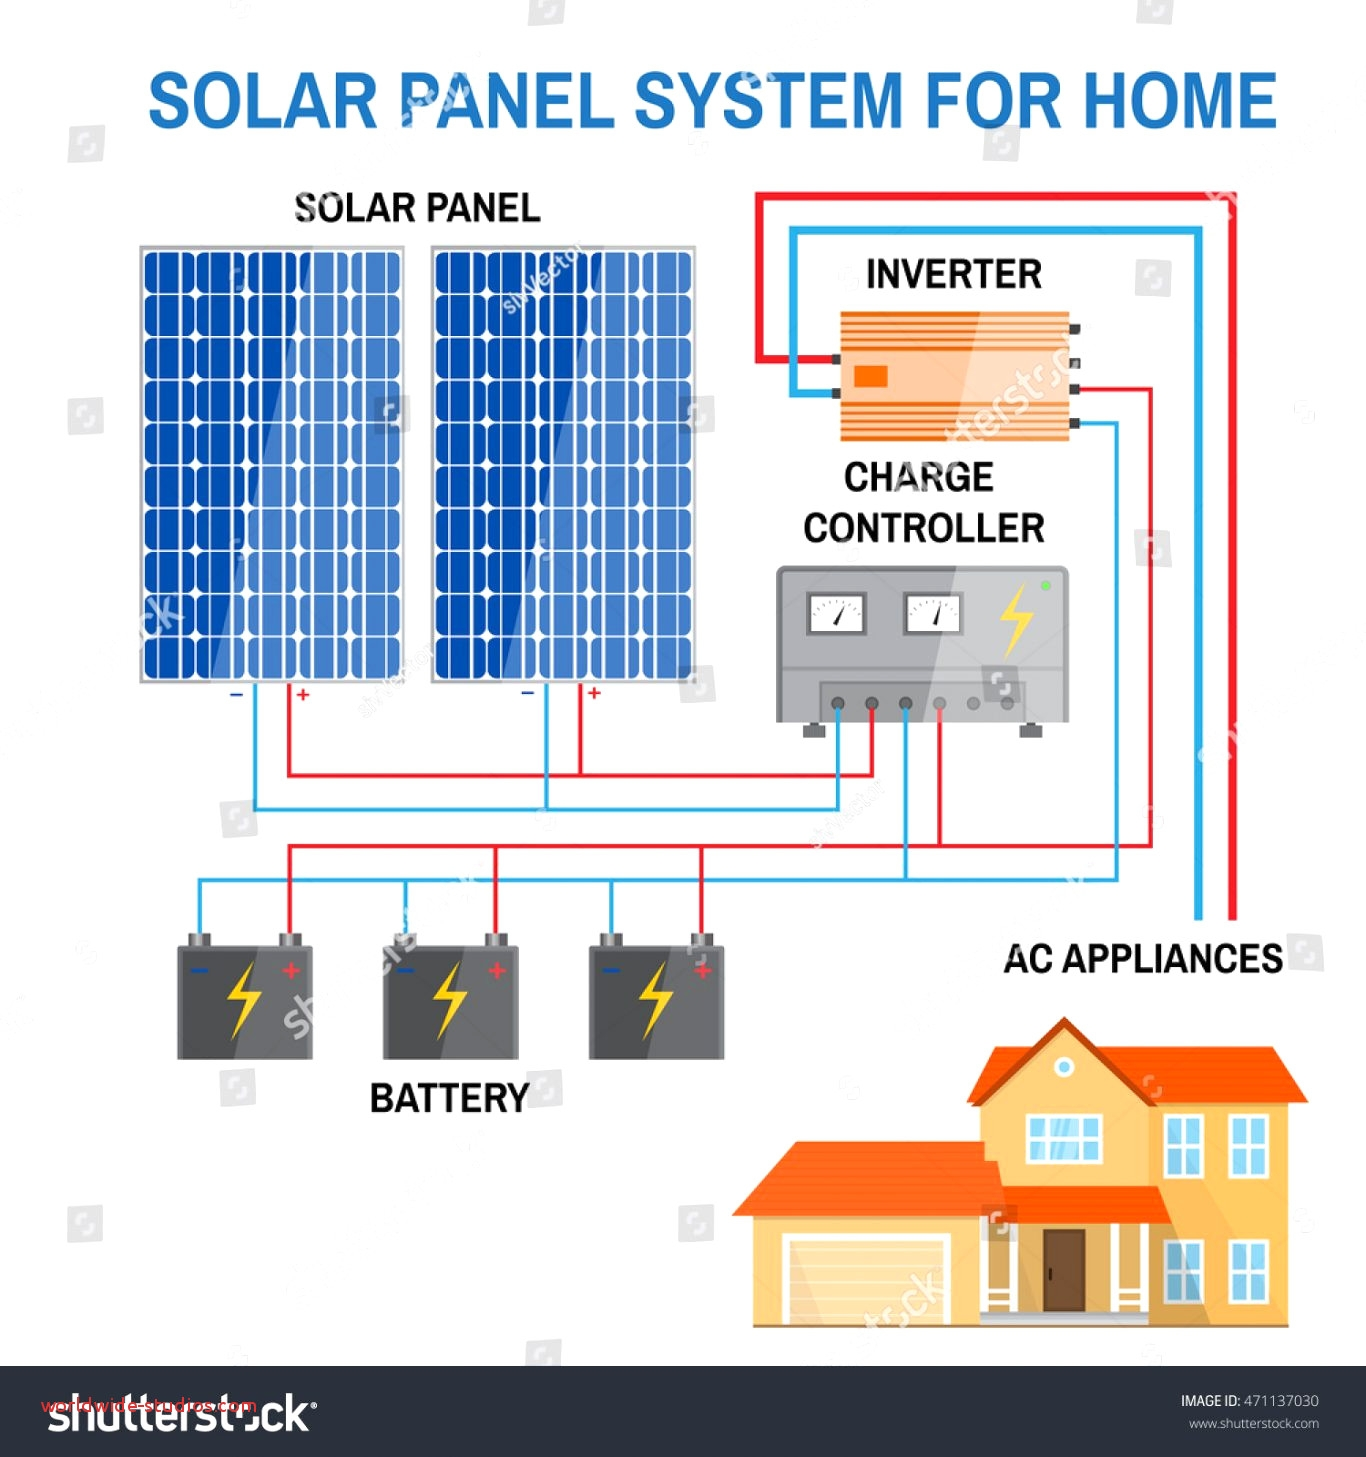 solar wiring diagram pdf Download-Top Result Diy solar Panels System Best solar Power System Wiring Diagram Parallel Tsmppt Diy 17-o